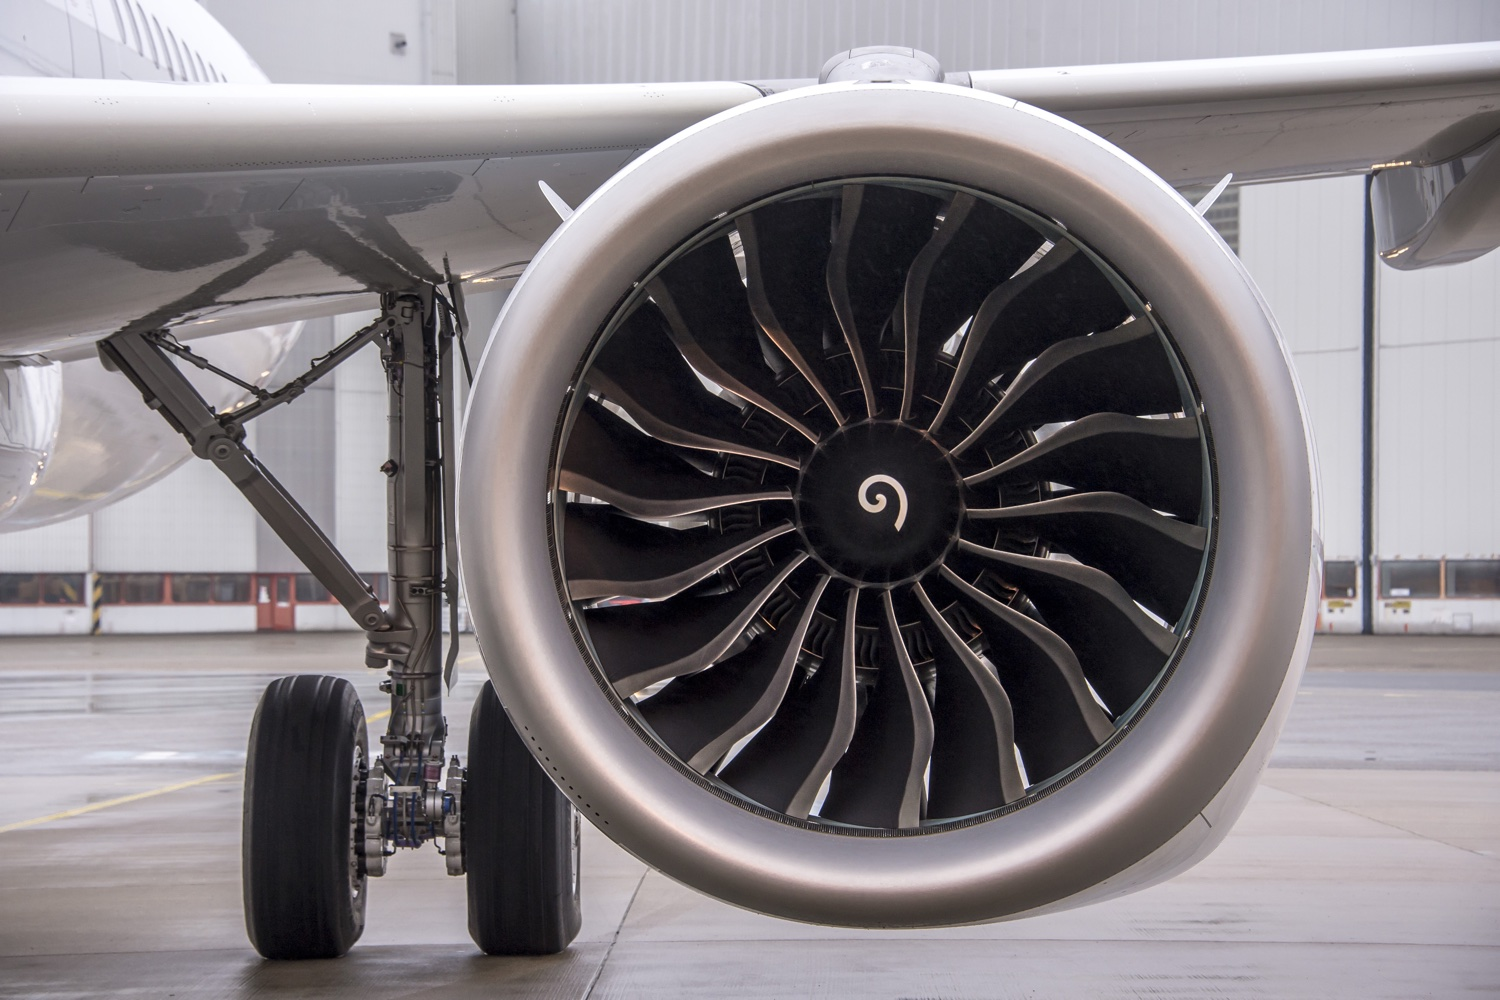 The new CFM LEAP engines on the A320neo